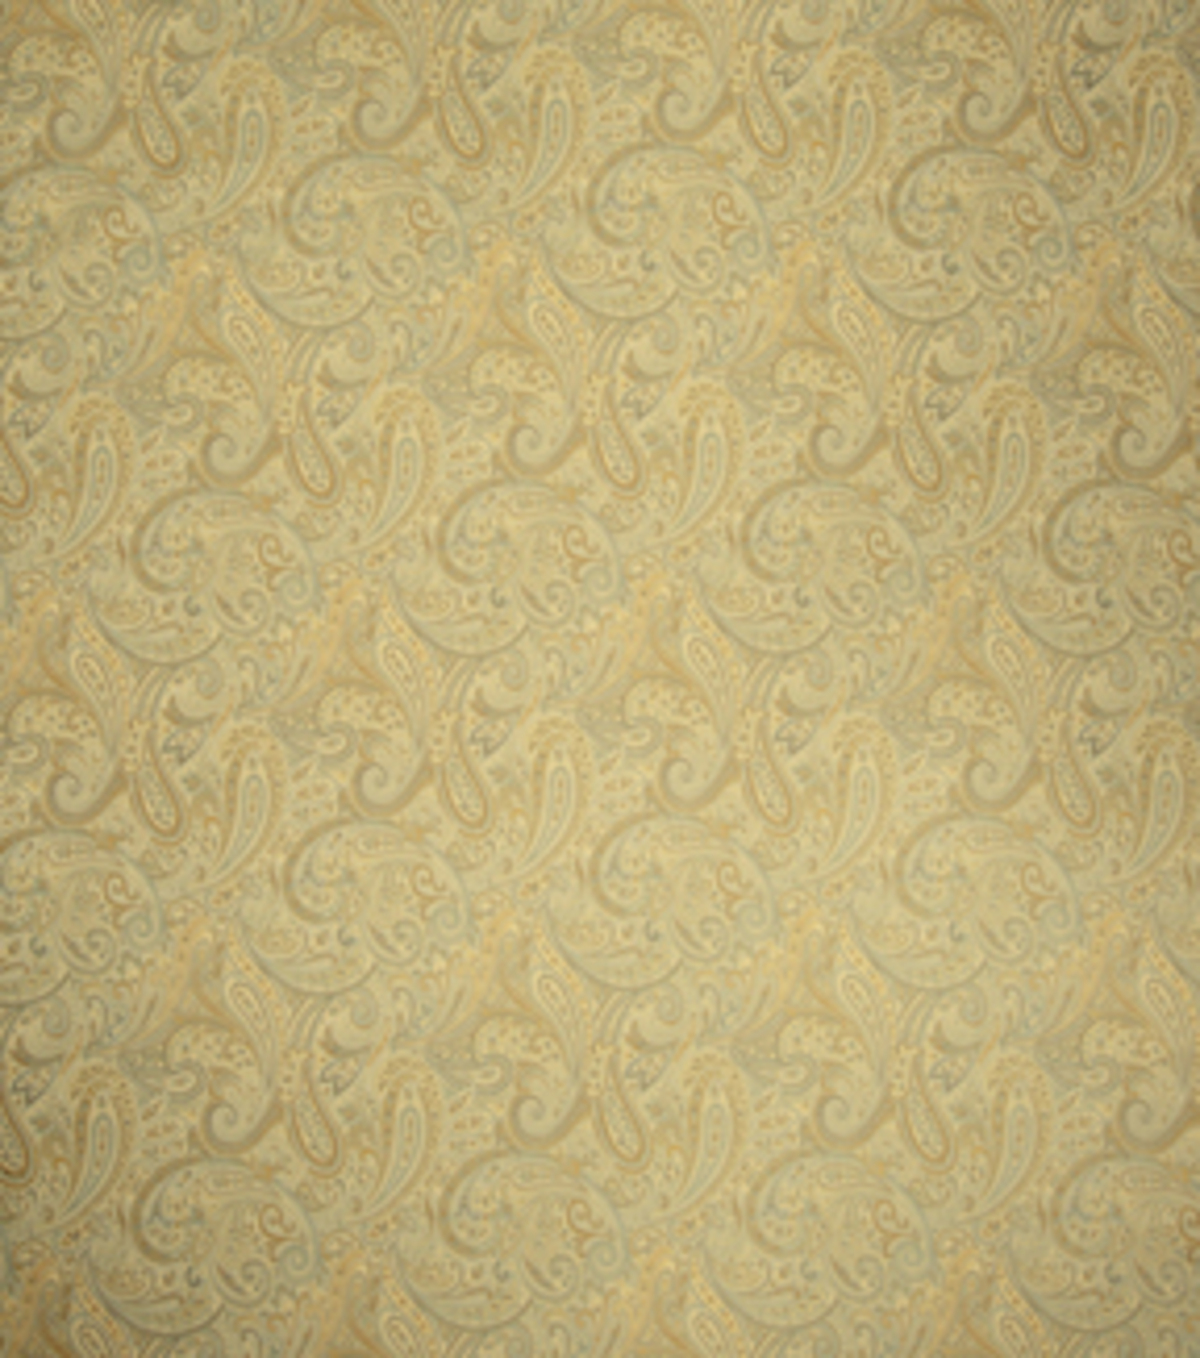 Home Decor 8\u0022x8\u0022 Fabric Swatch-Eaton Square Fund Raiser Topaz